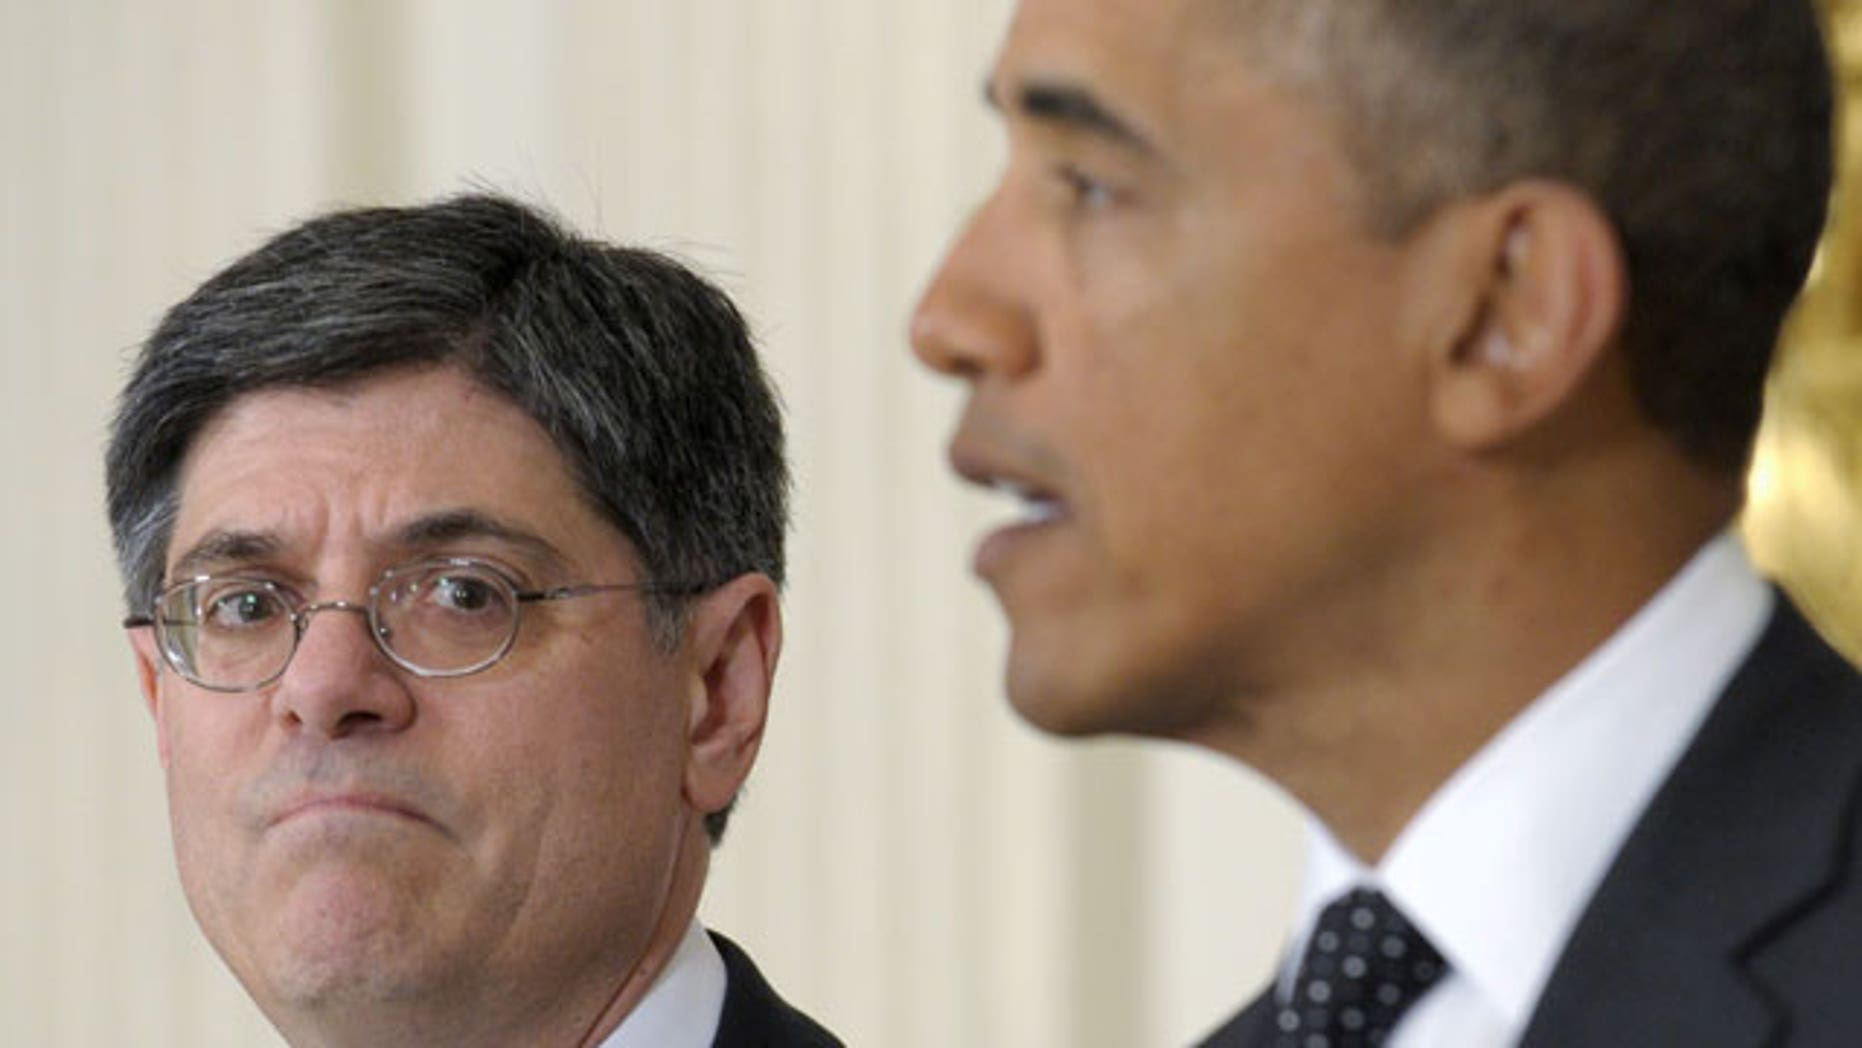 FILE: In this Jan. 9, 2012, photo, President Obama discusses Jacob Lew's move to become White House chief of staff in place of Bill Daley.